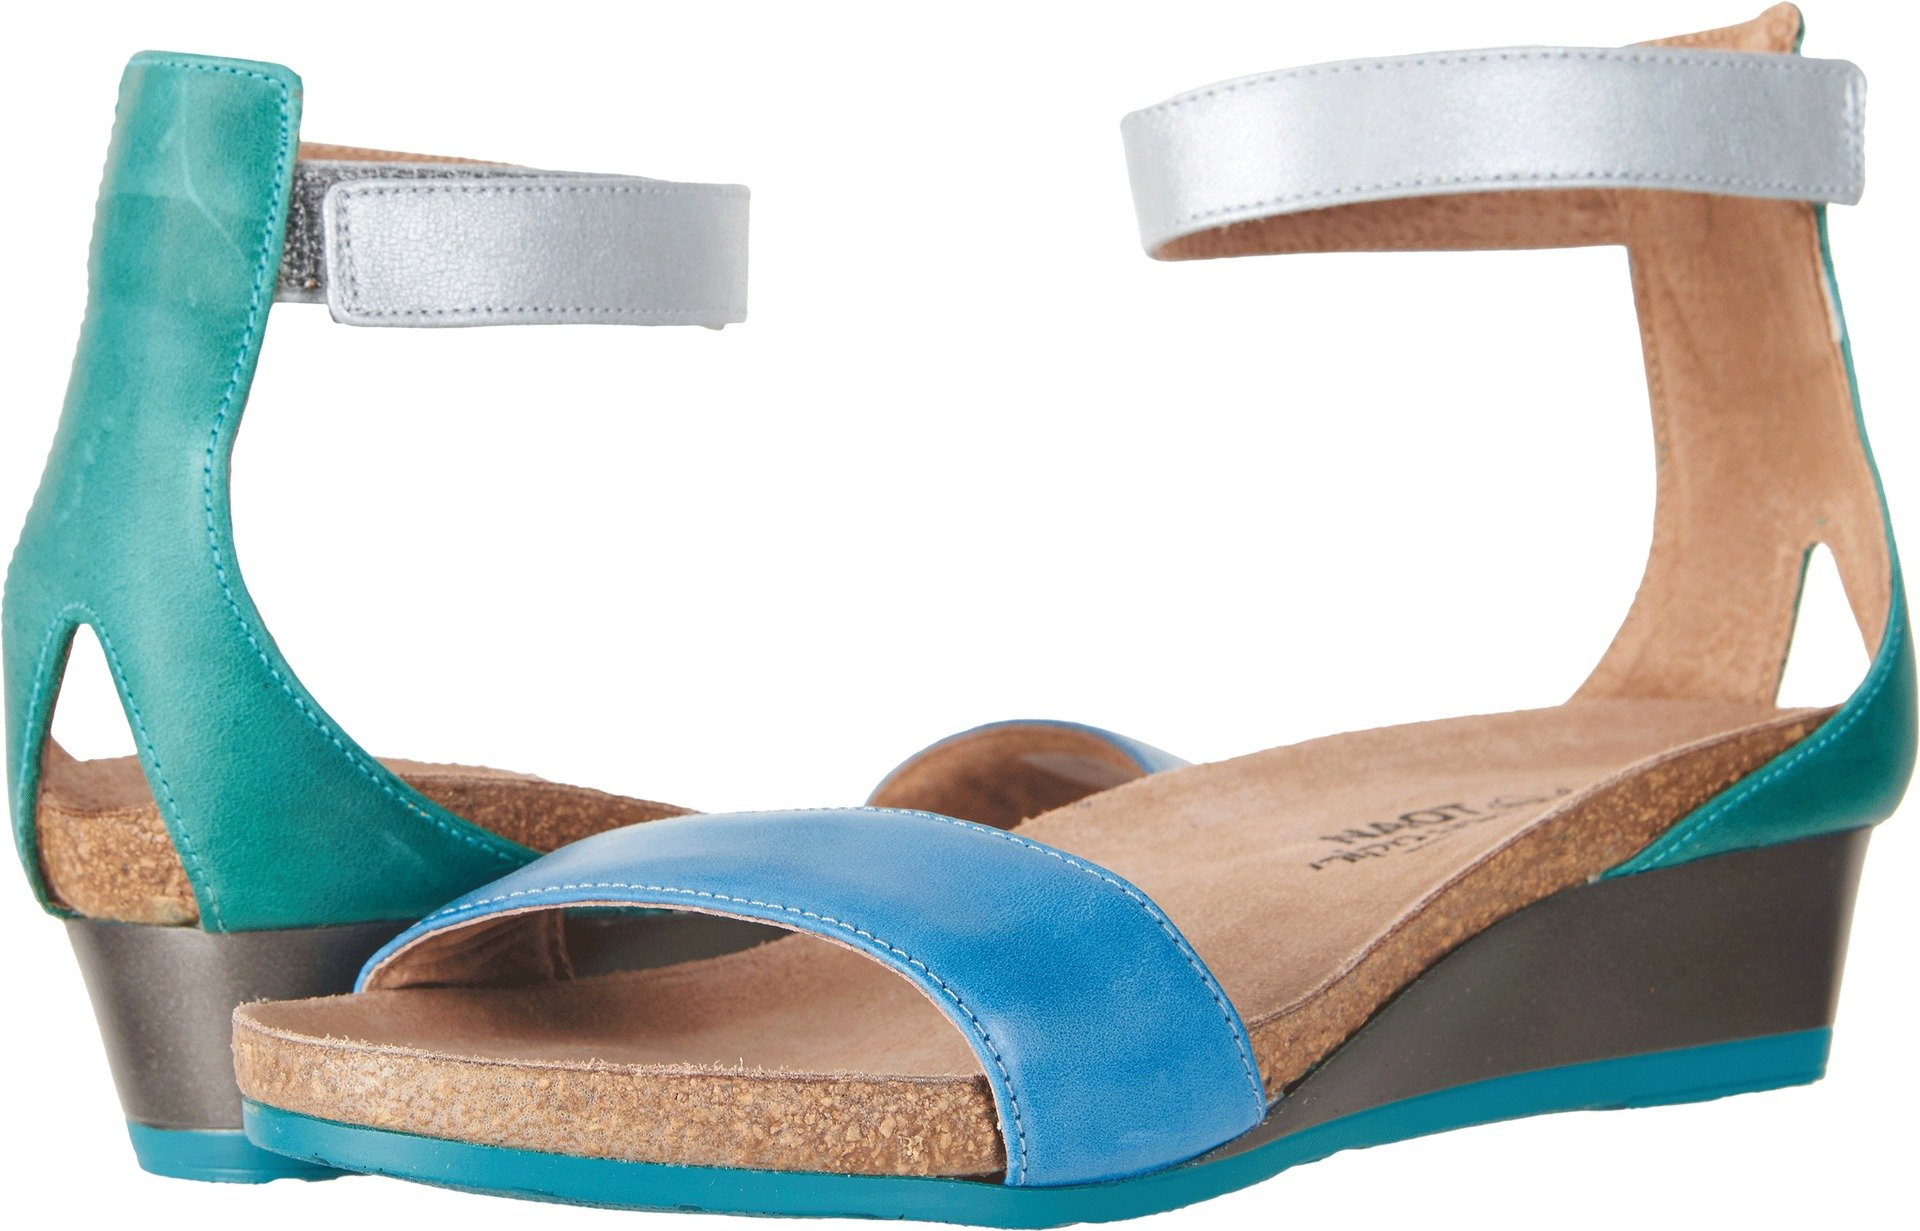 Naot Footwear Women's Pixie Vintage Blue Leather/Oily Emerald Nubuck/Ice Blue Leather 35 M EU